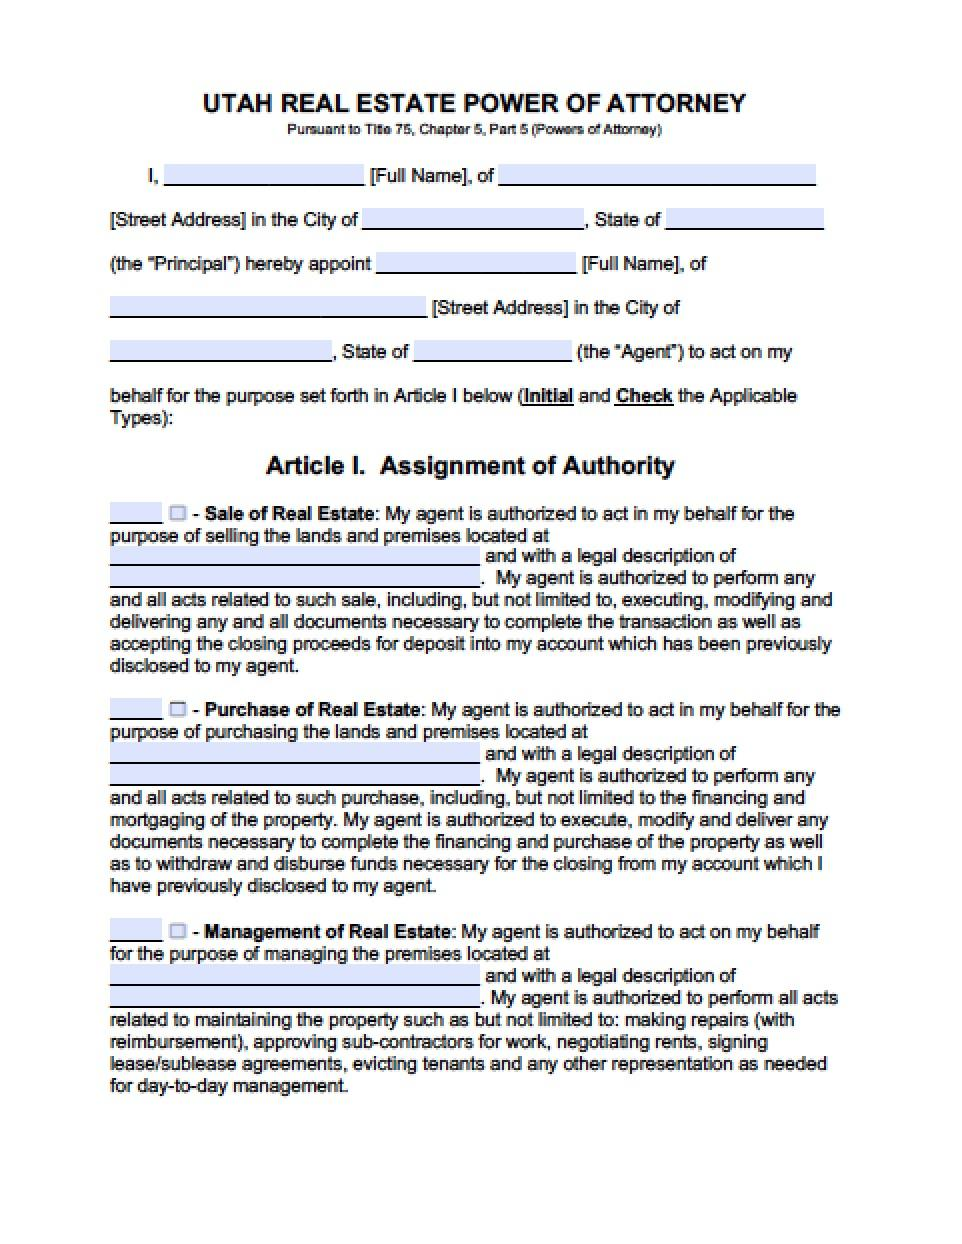 Utah Standard Power Of Attorney Form